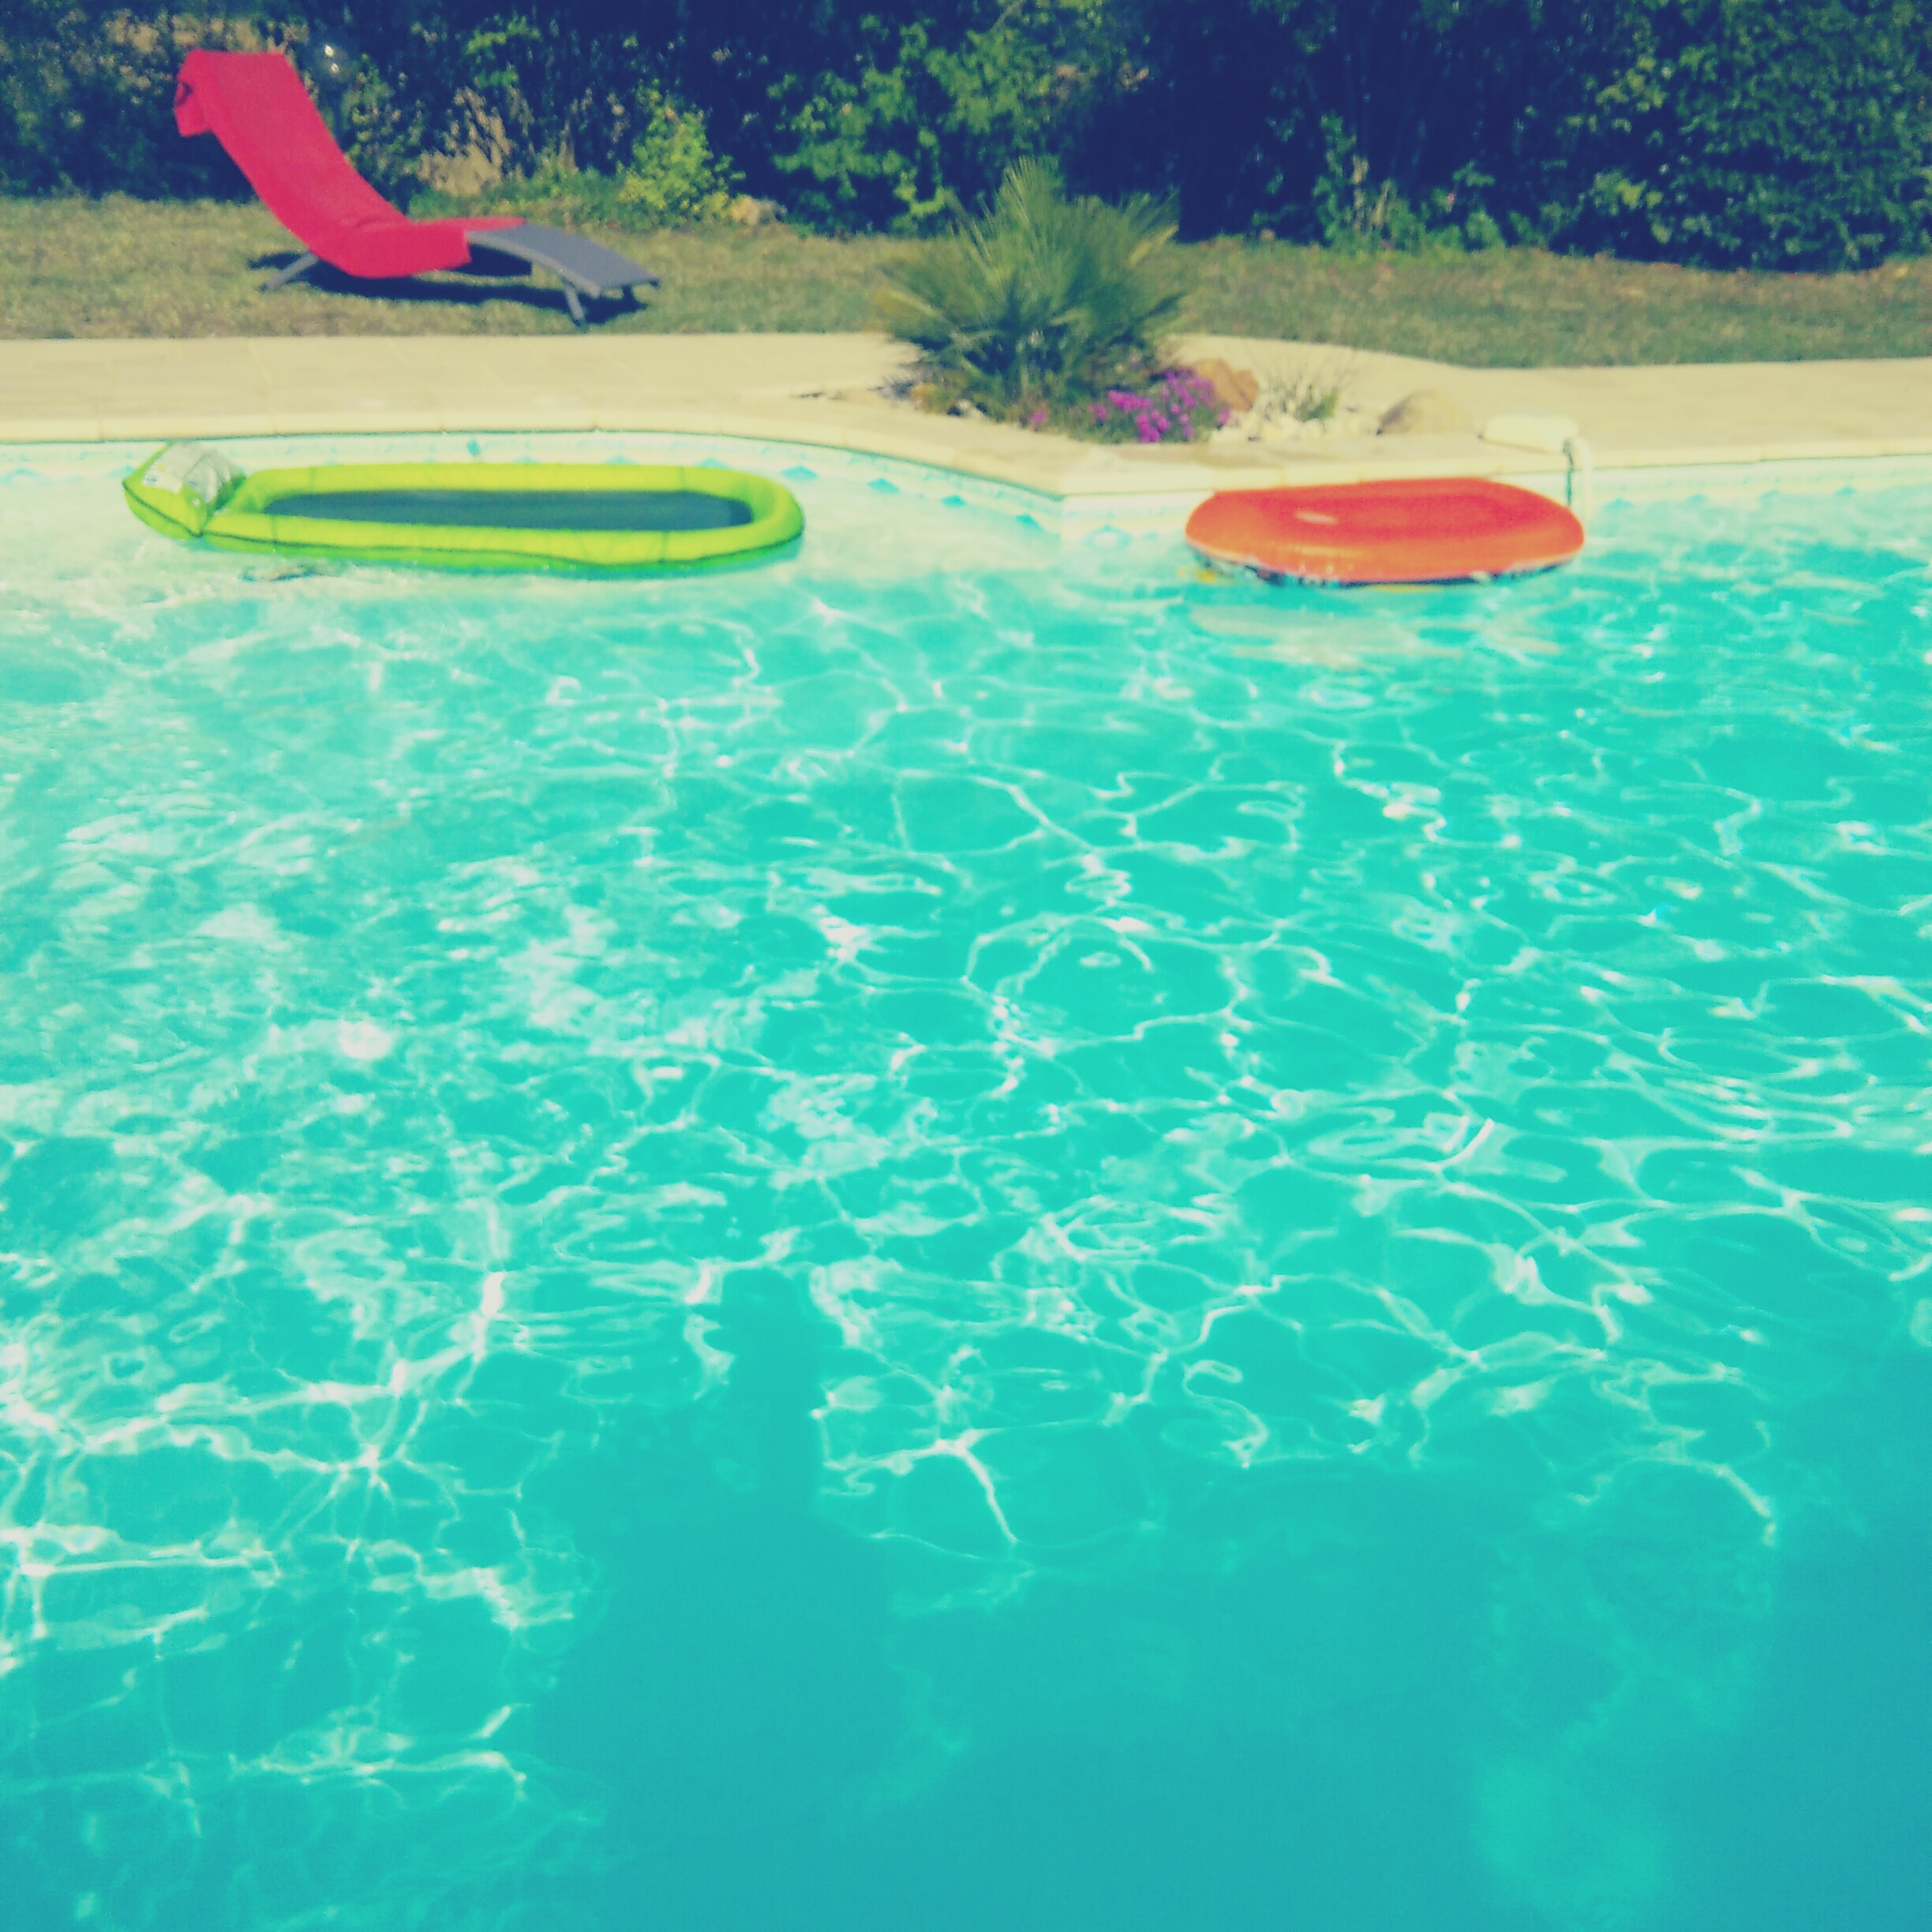 Free stock photo of pool toys summer swimming pool